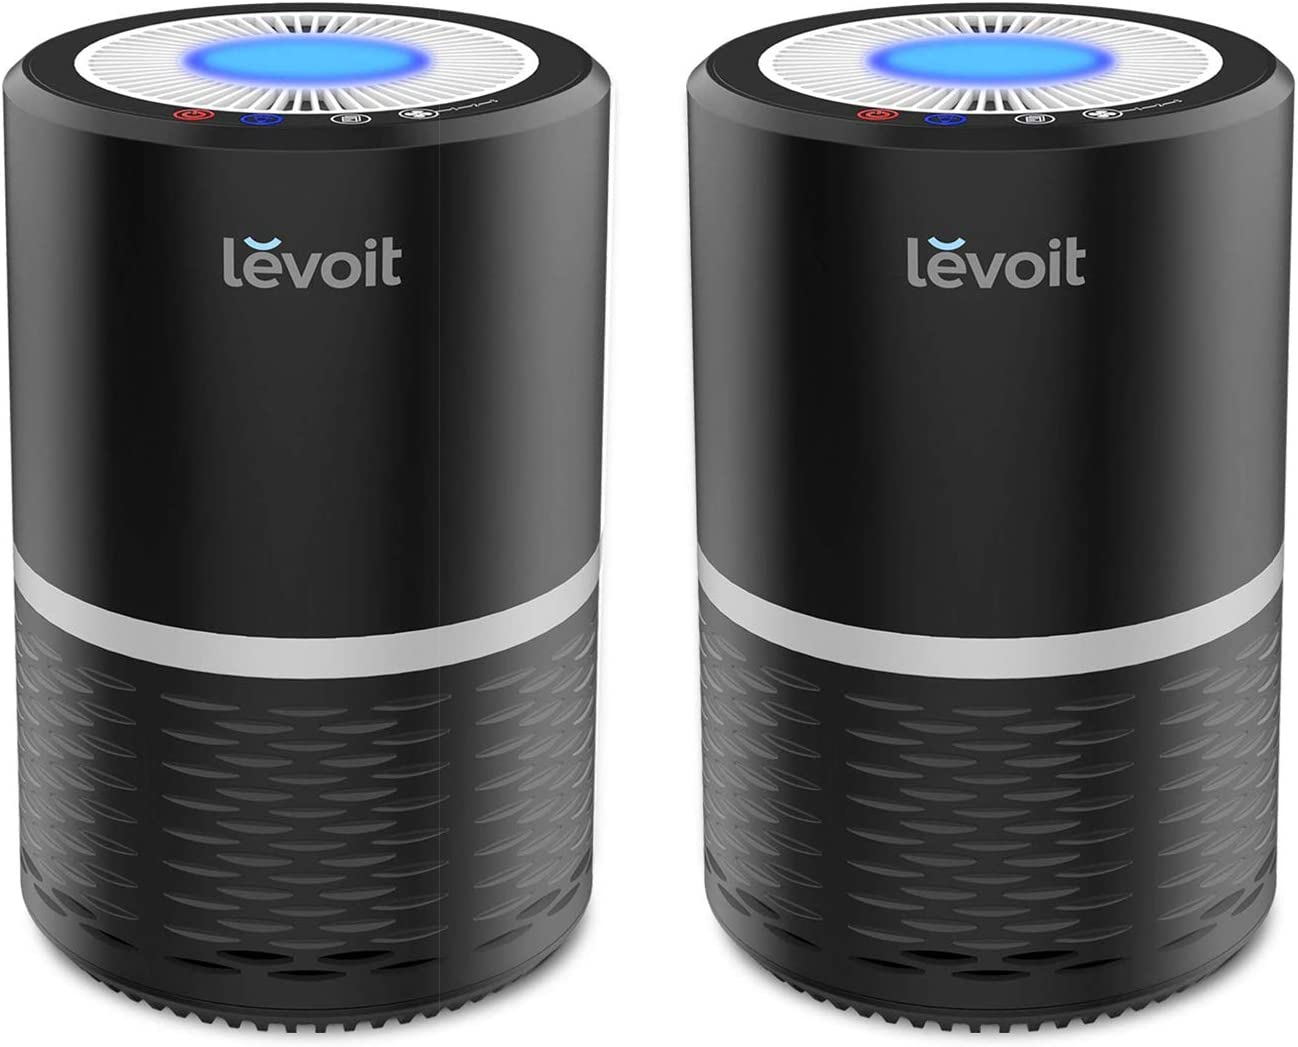 LEVOIT Air Purifier for Home Smokers Allergies and Pets Hair, True HEPA Filter, Quiet in Bedroom,Filtration System Eliminators, Odor Smoke Dust Mold, Night Light, 2-Yr Warranty, LV-H132, Black, 2PACK